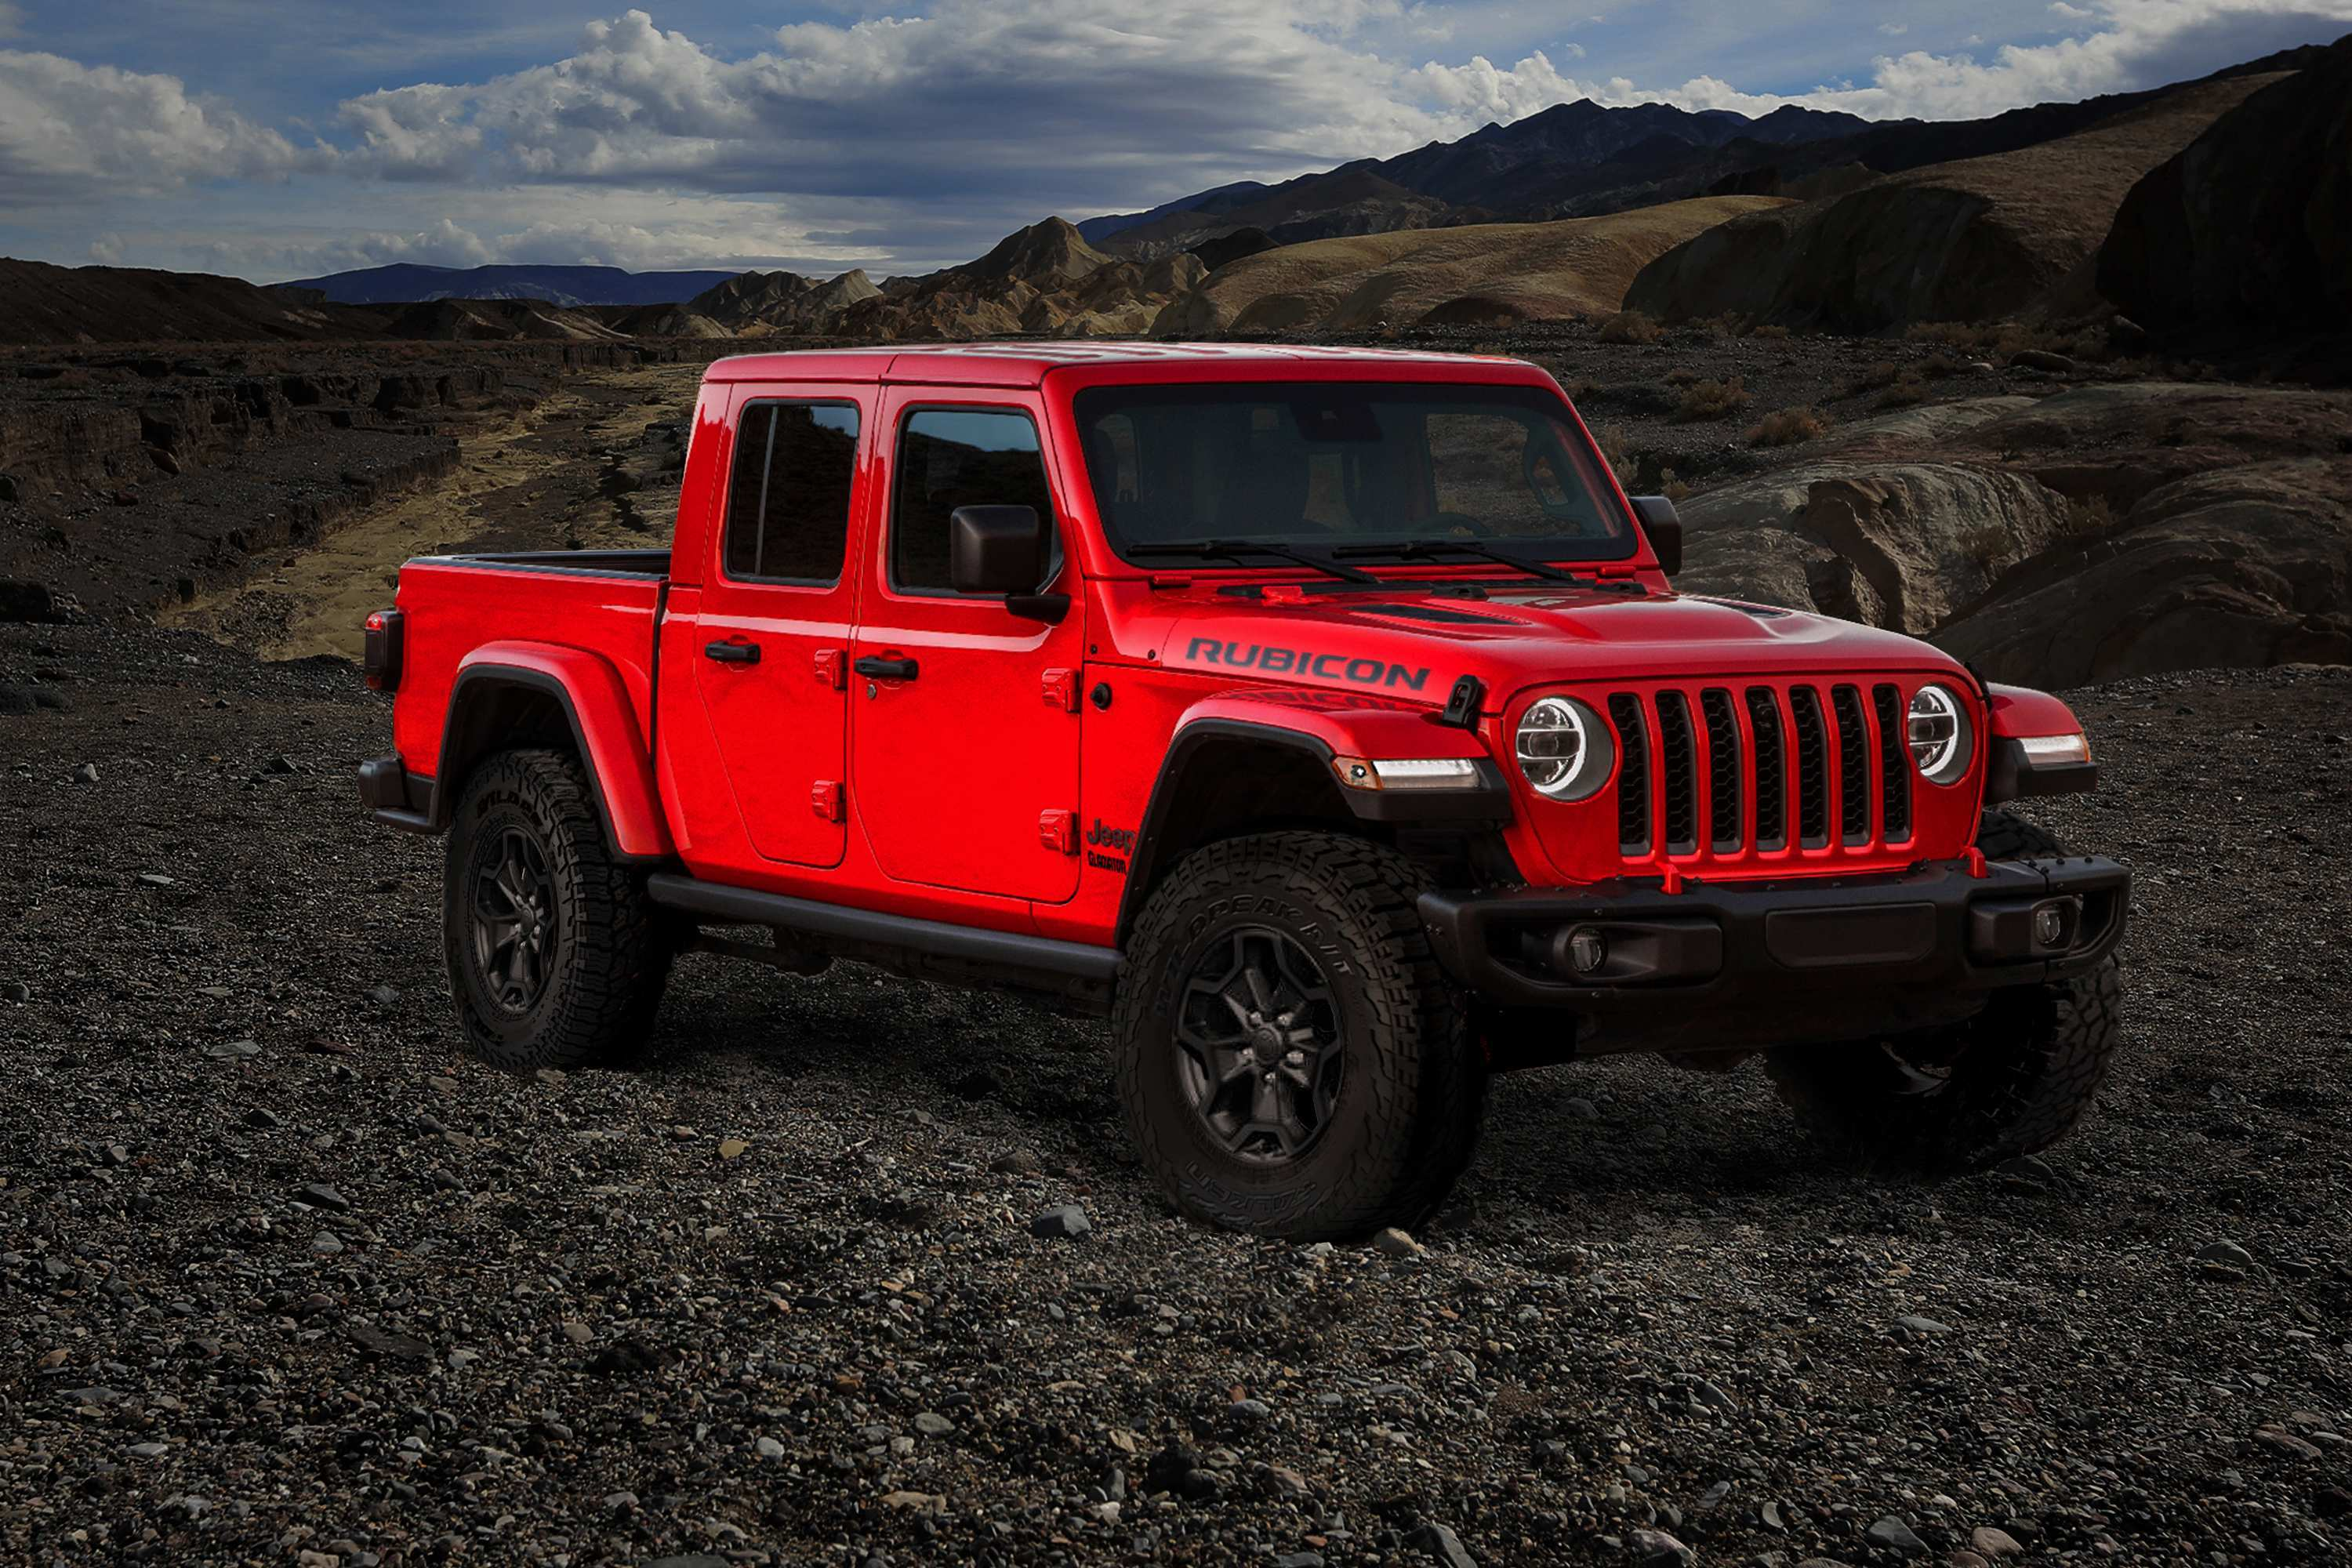 53 New 2020 Jeep Gladiator Release Date And Concept